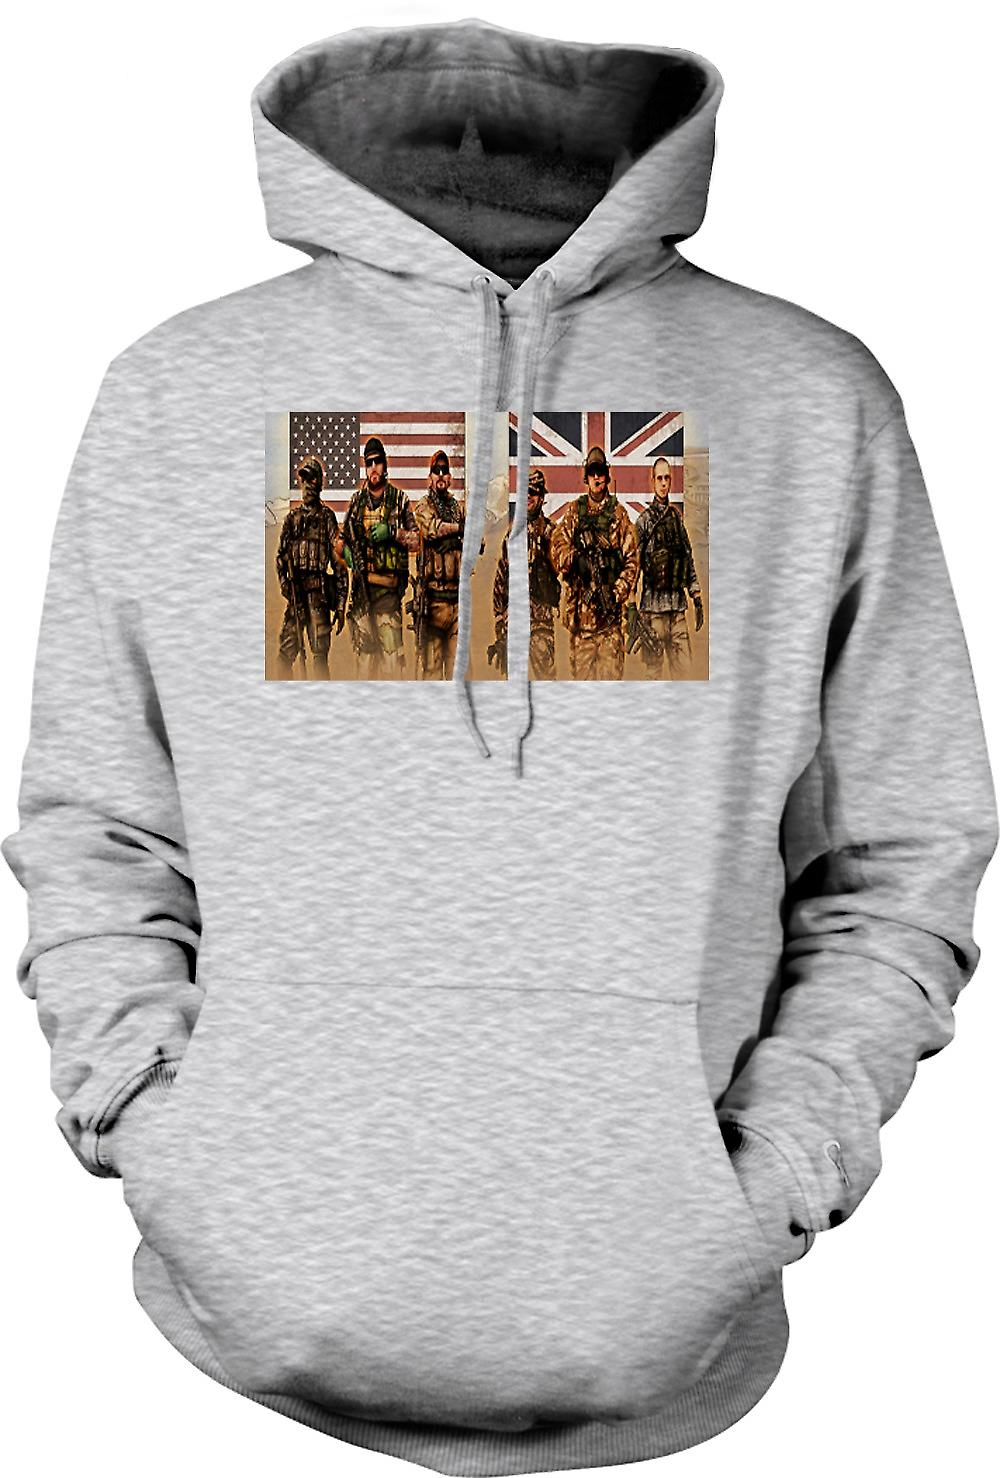 Mens Hoodie - USA och UK Special Forces. SAS och Delta